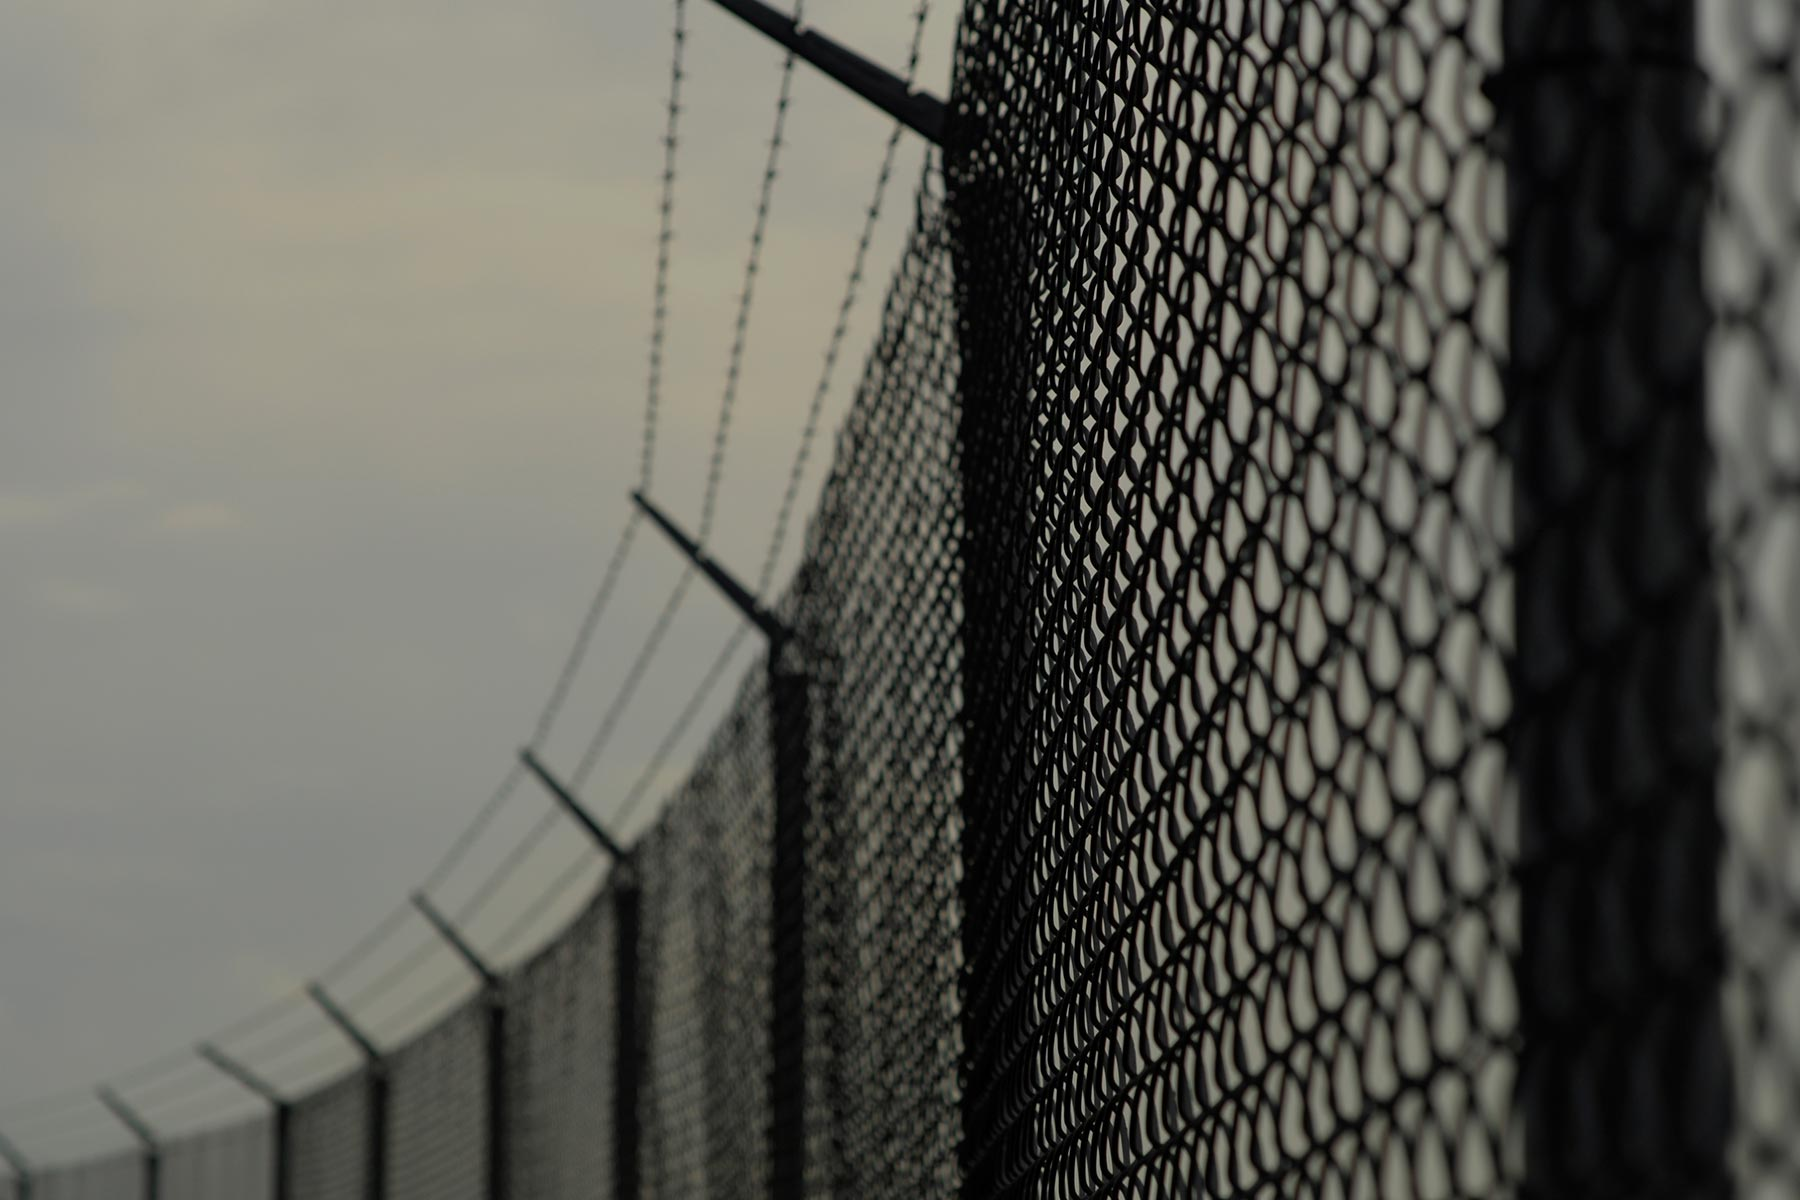 prison-fence-stock-photo